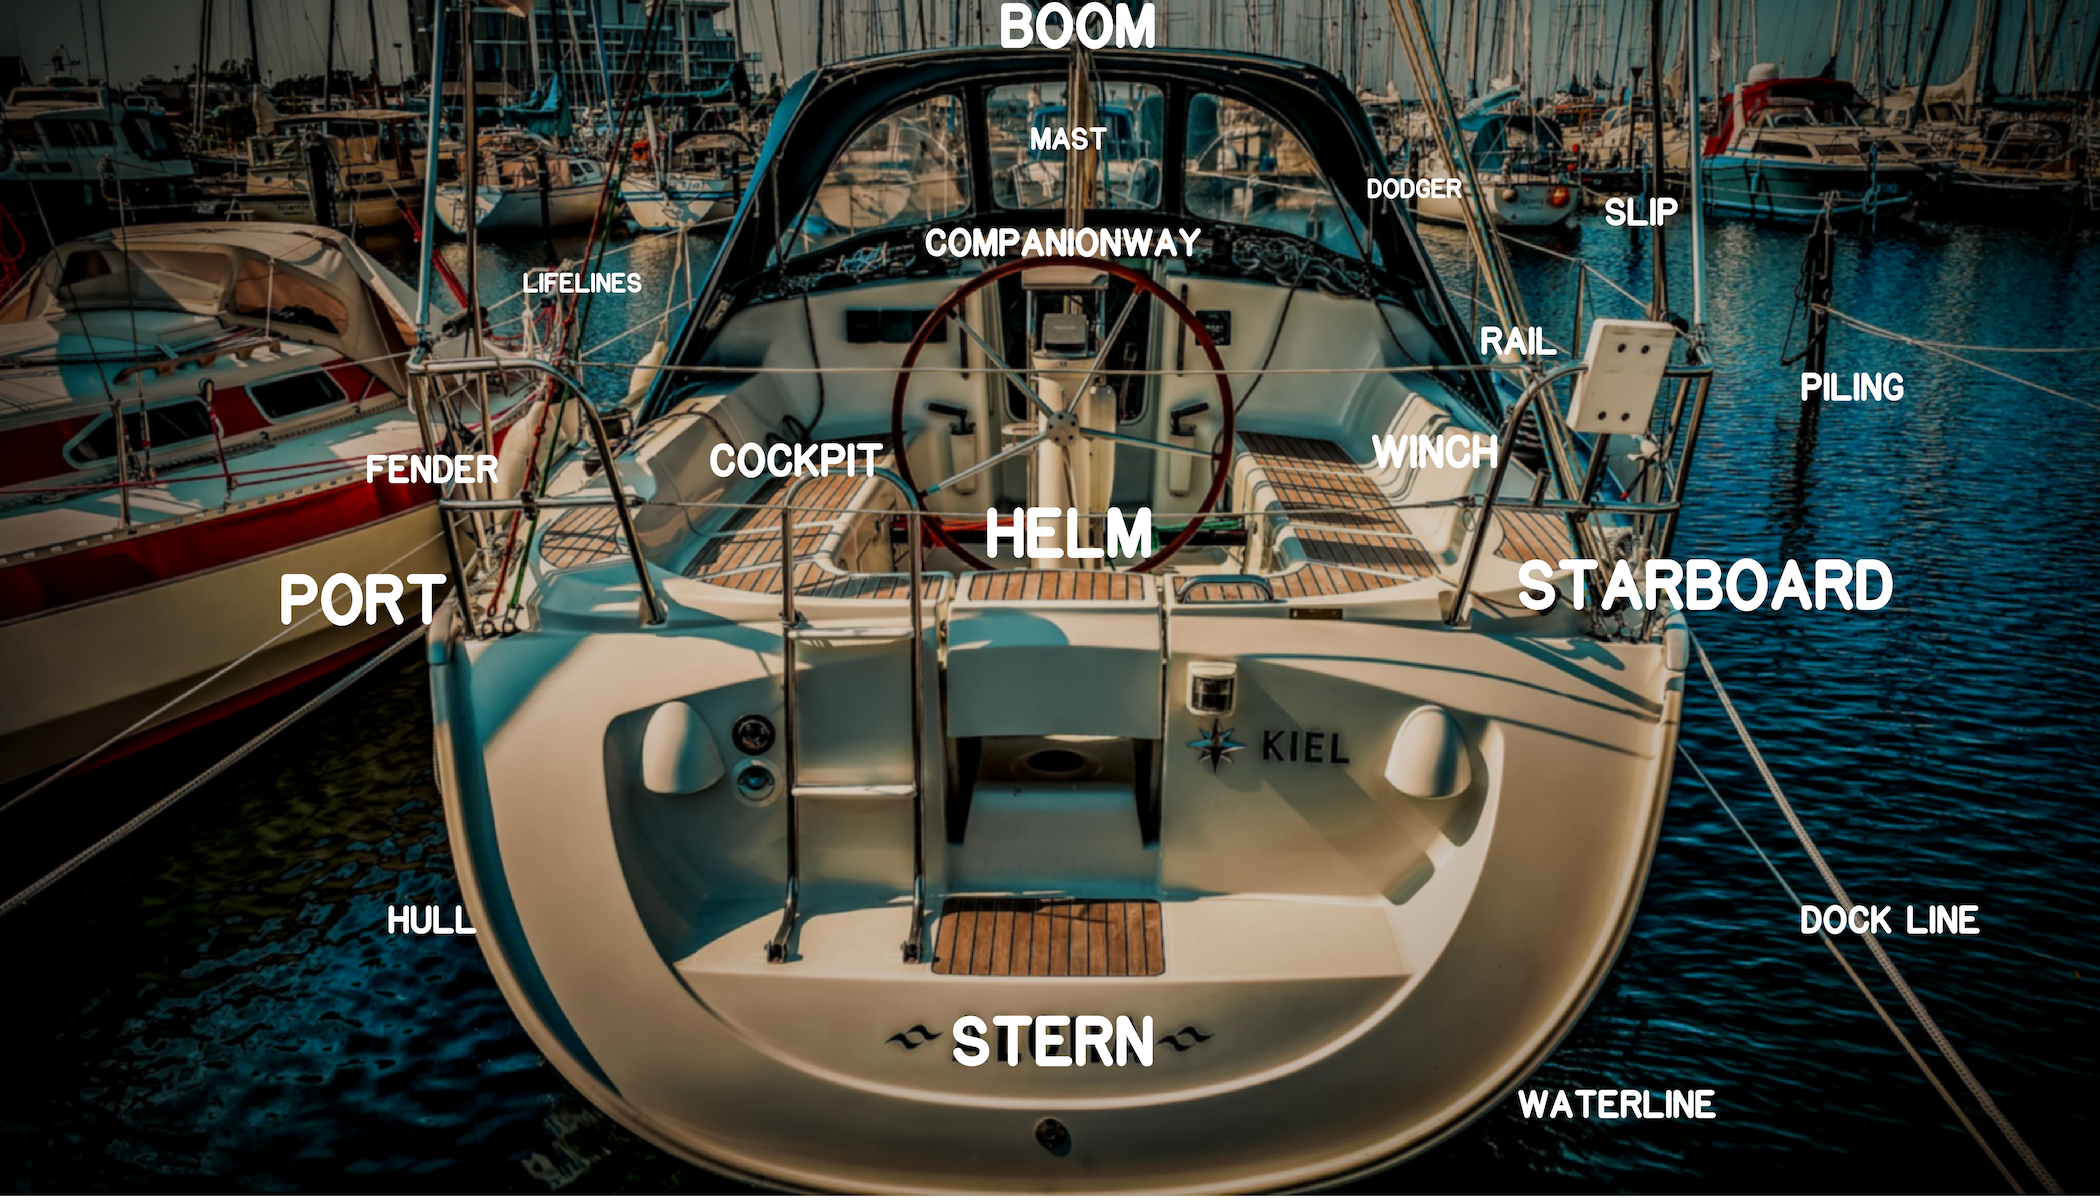 Boating Terminology  Parts Of A Boat And Common Phrases To